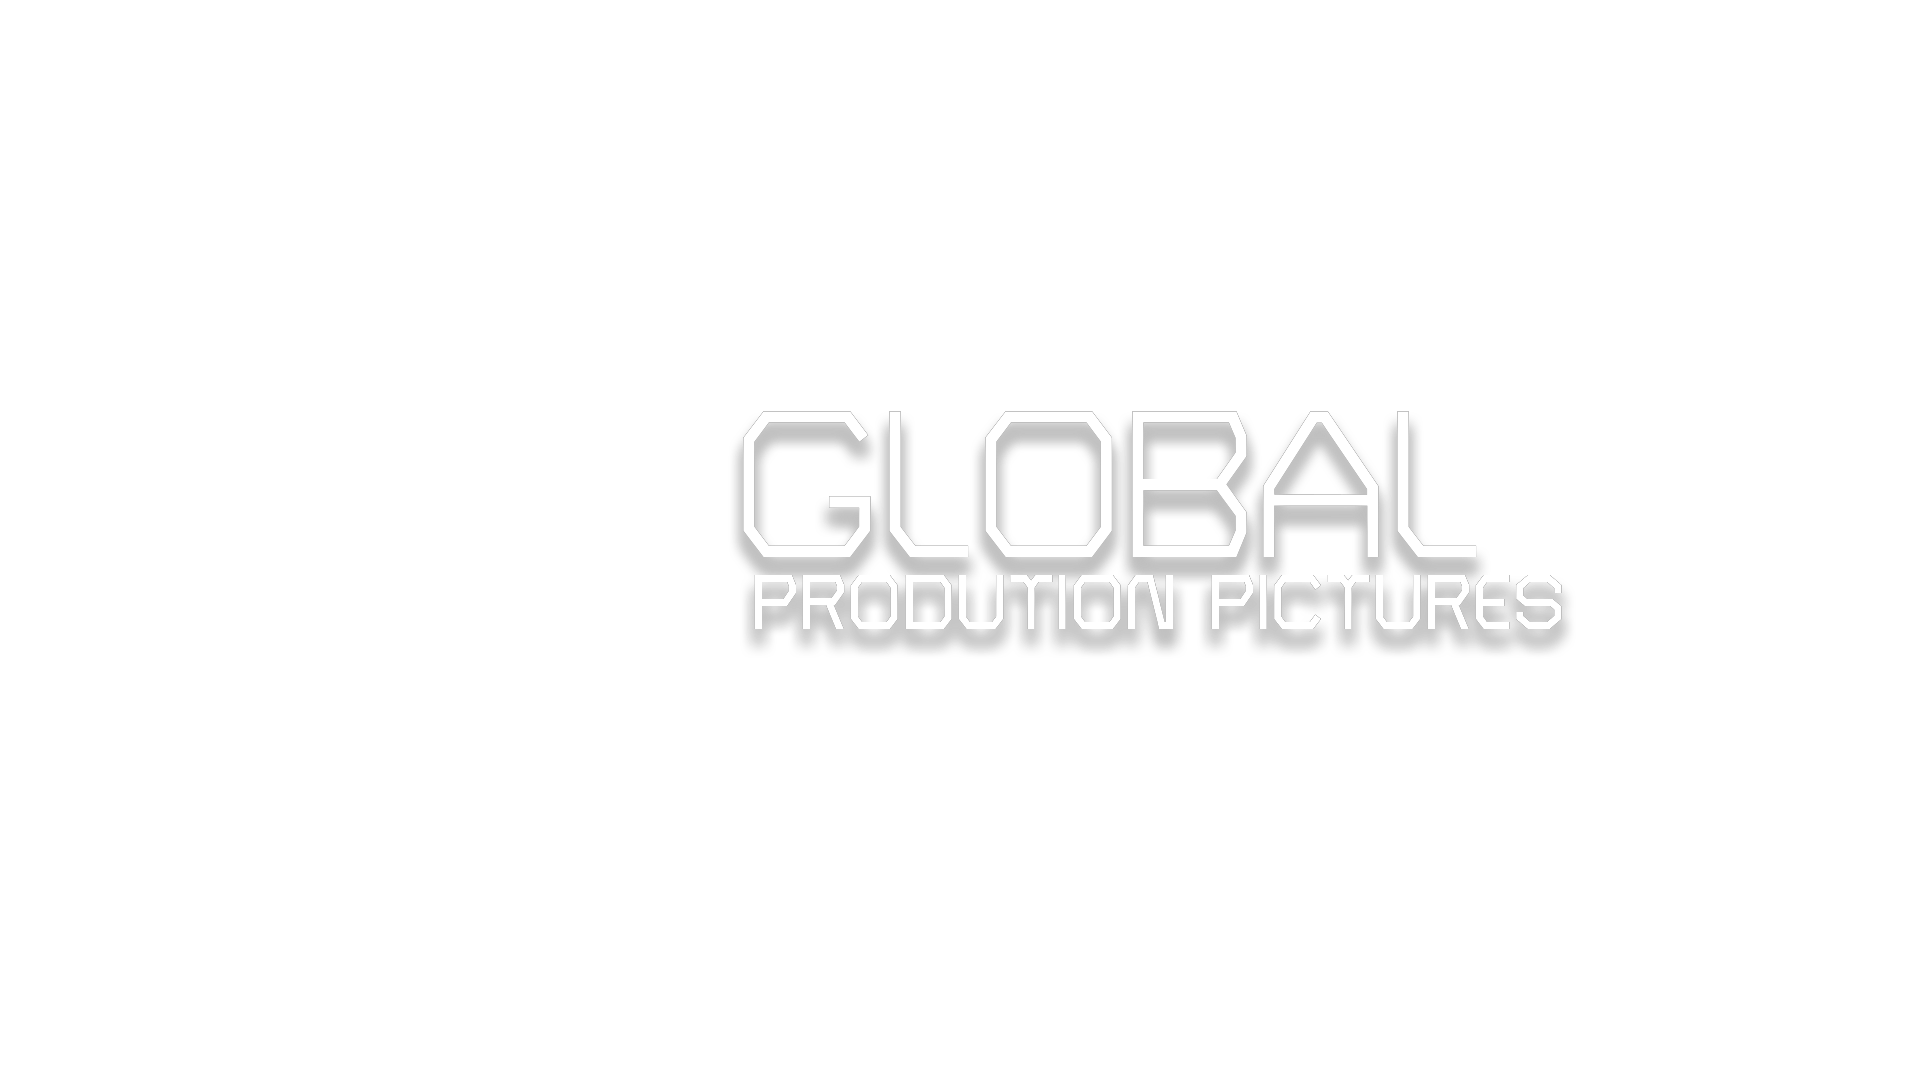 Global Production Picture white logo